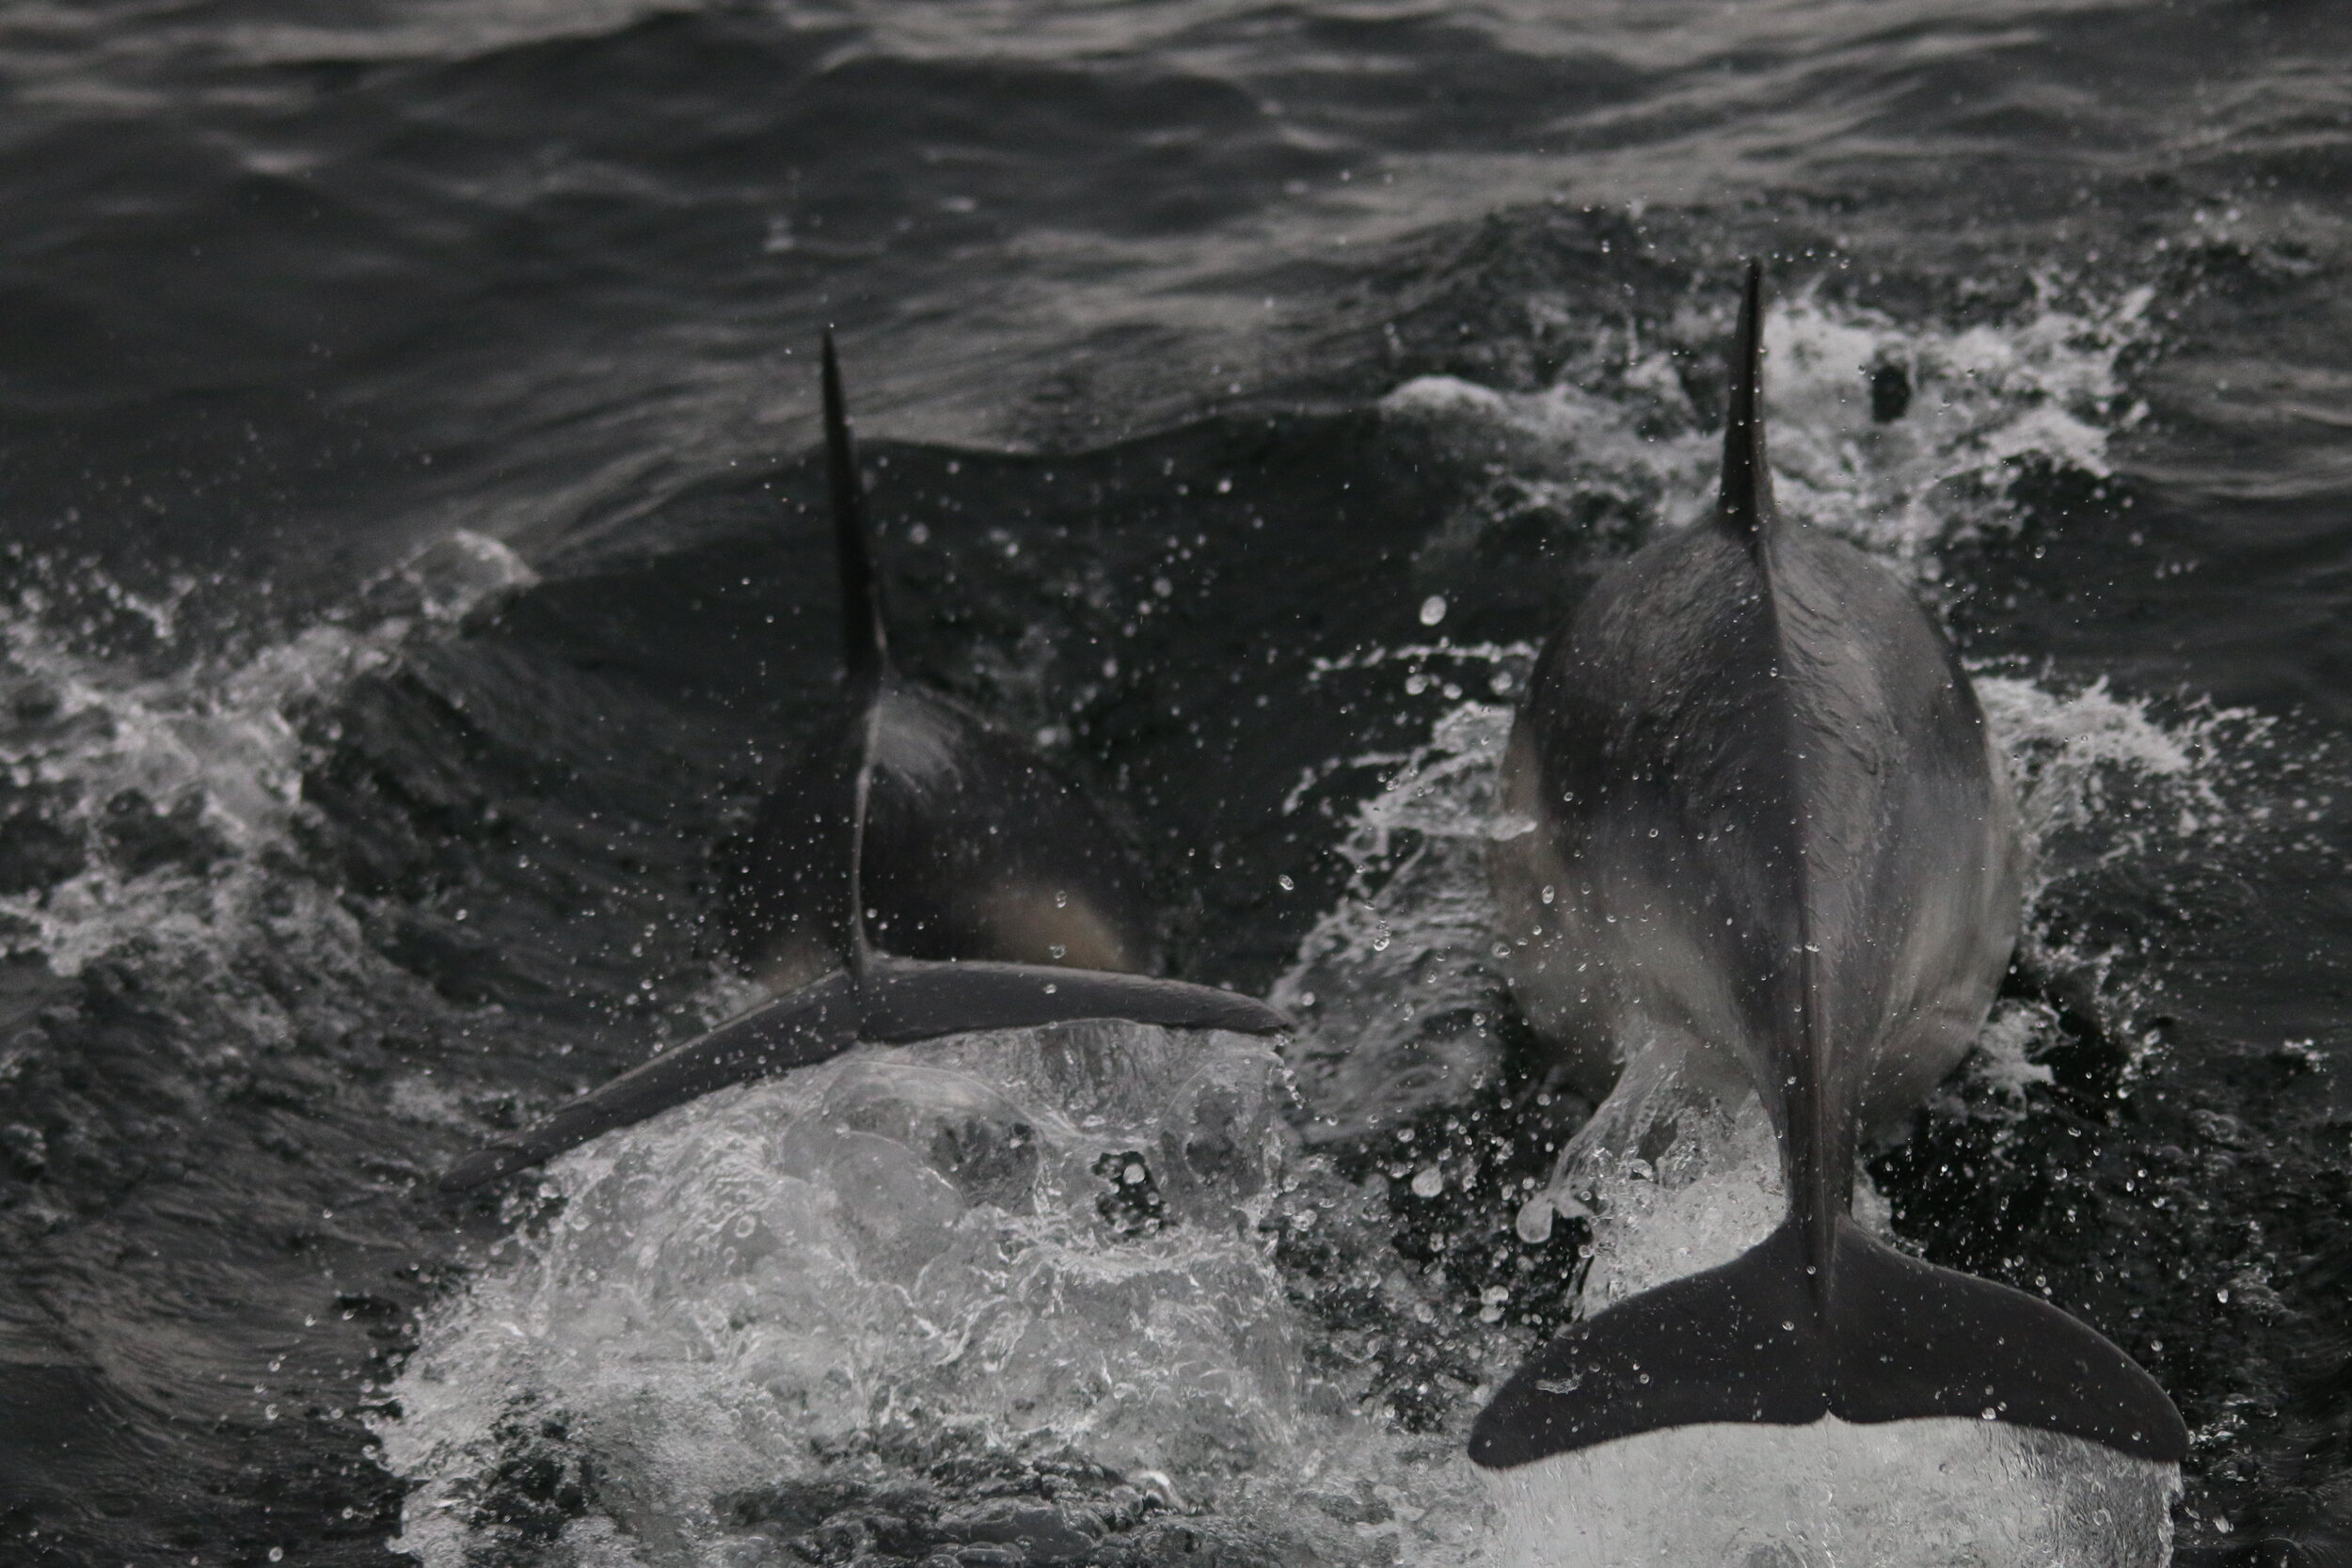 Two of the common dolphins encountered